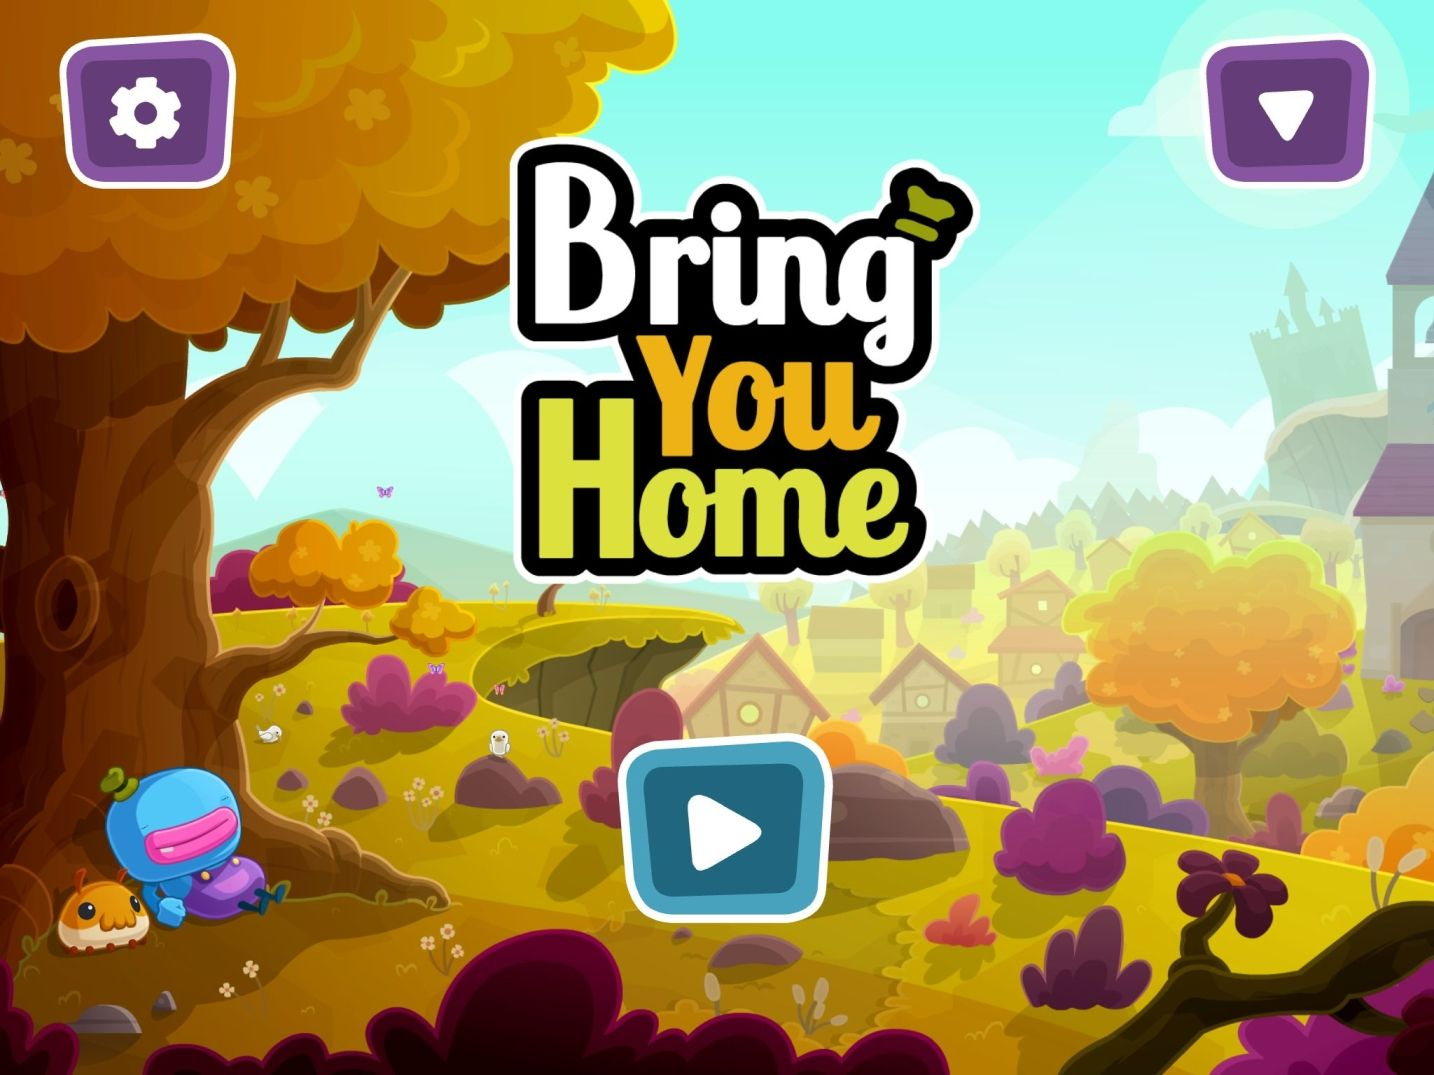 Bring You Home (copie d'écran 1 sur Android)